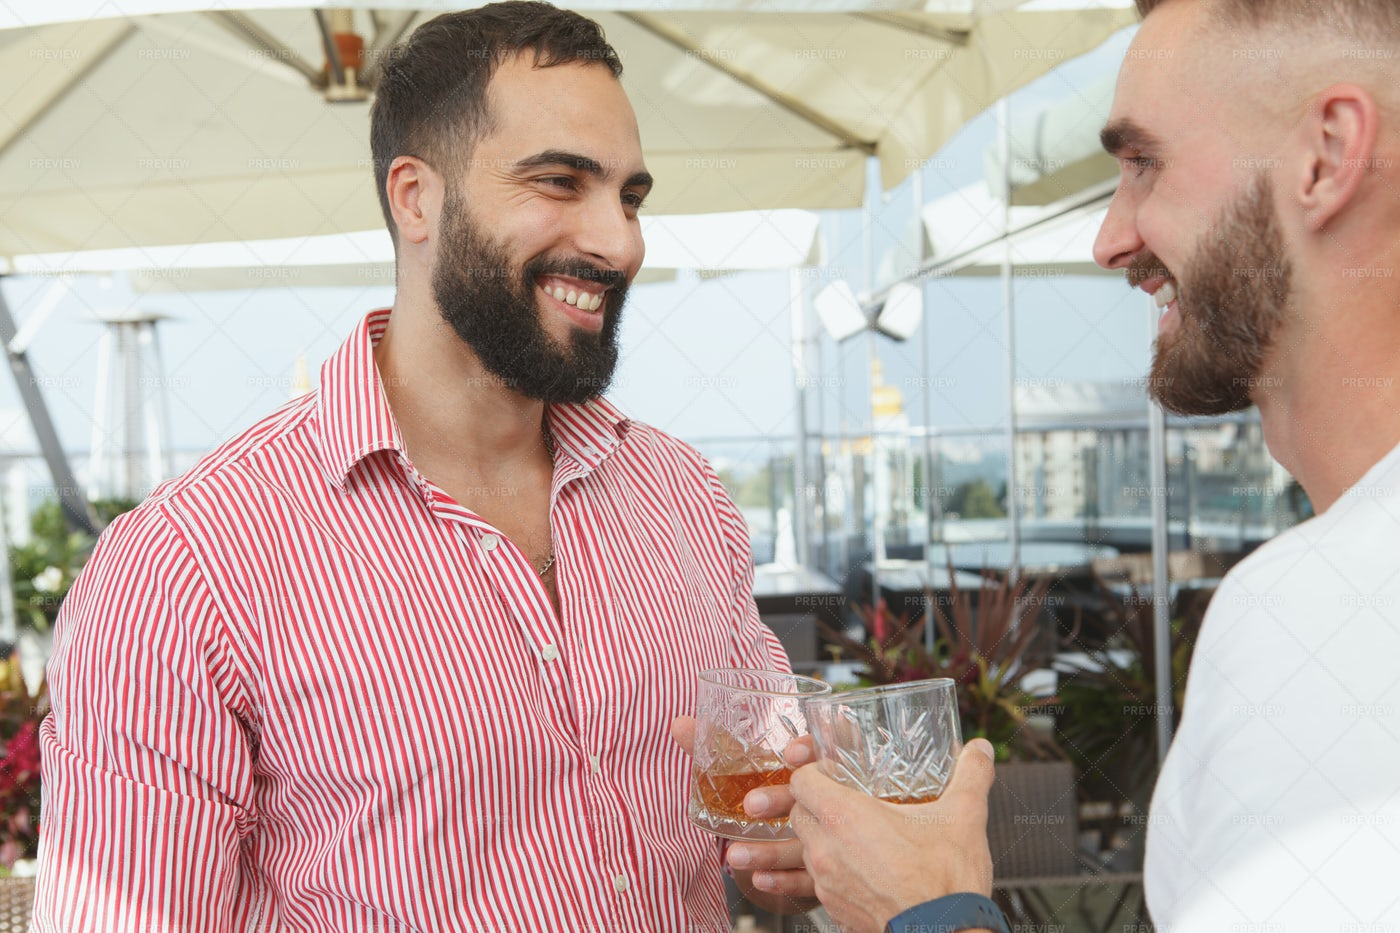 Man Having Drinks With His Friend: Stock Photos